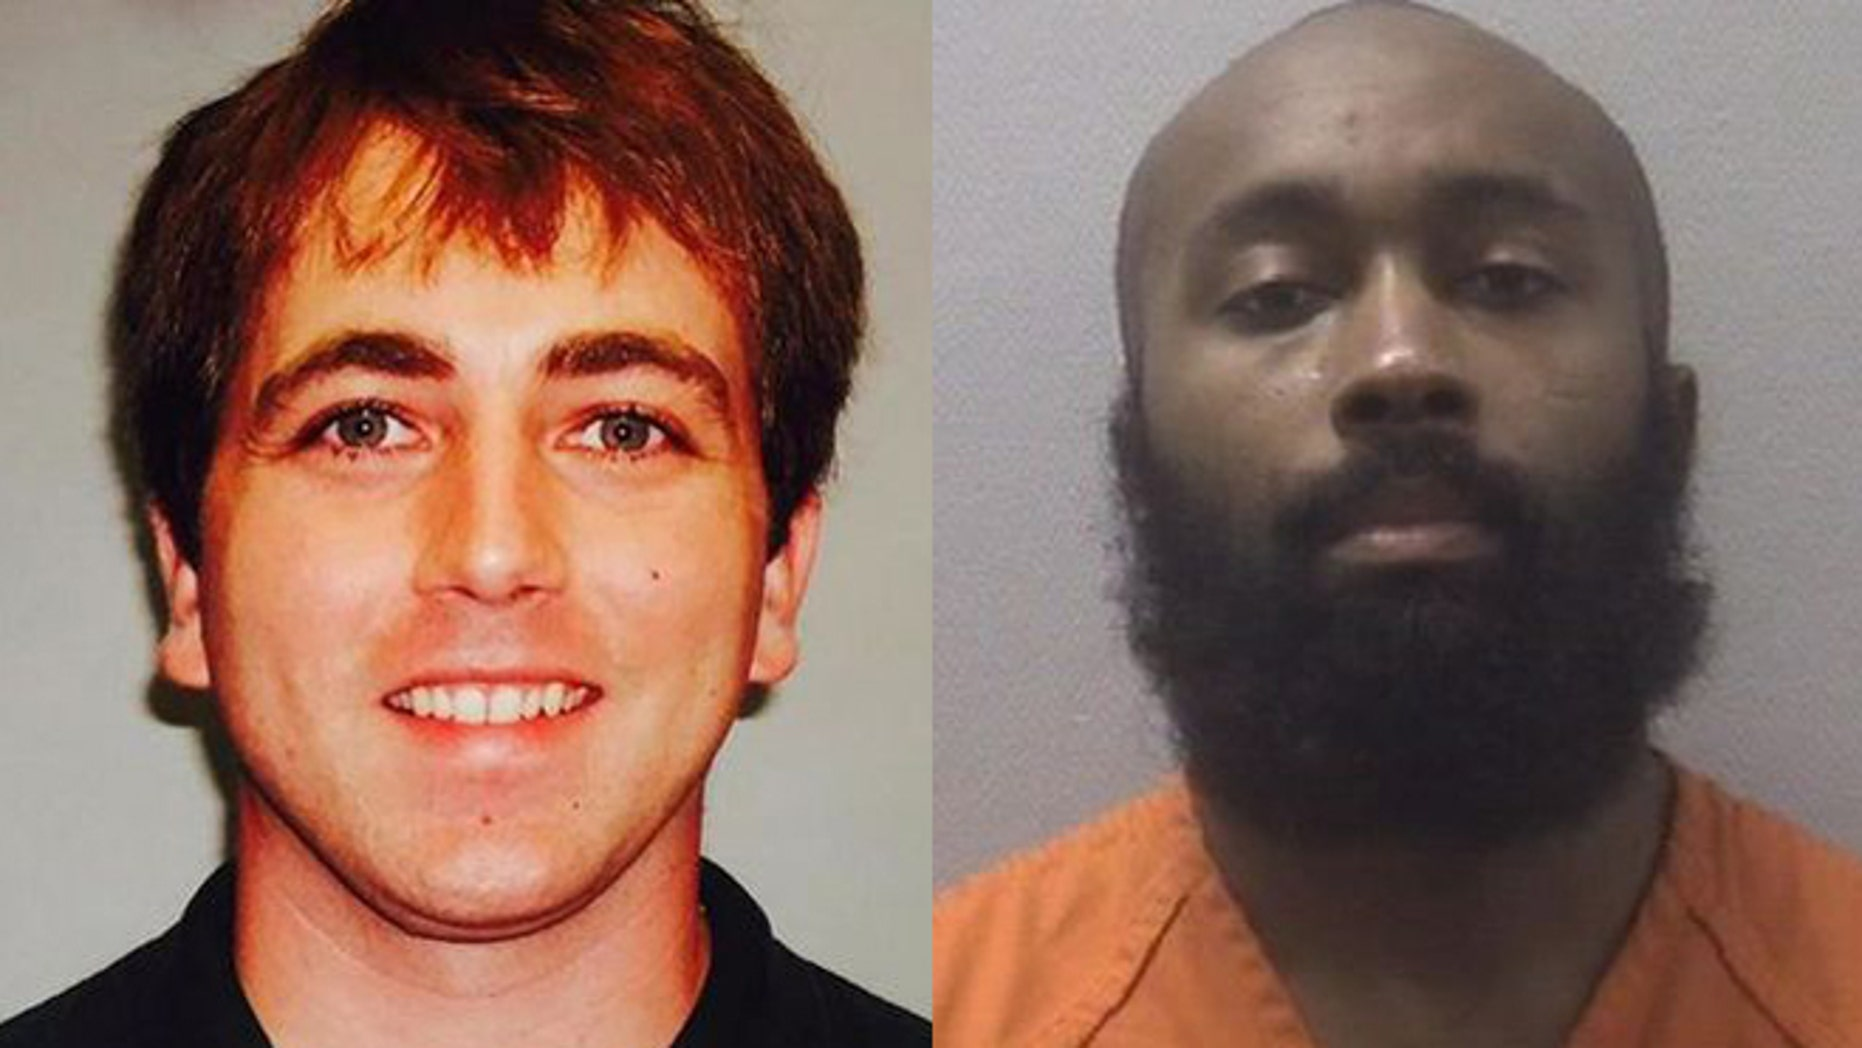 Police Officer Greg Alia, left, was shot and killed Wednesday. Jarvis Hall, right, was arrested in the shooting.